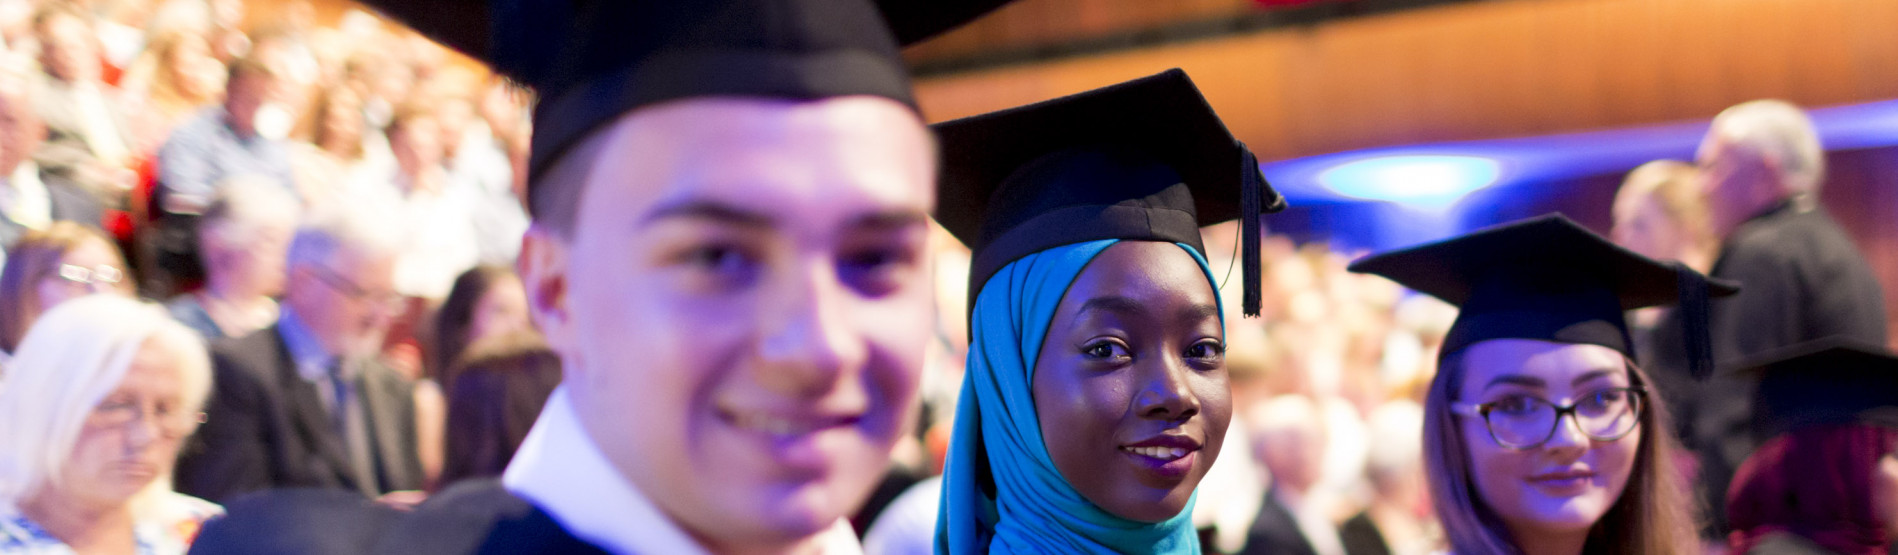 Group of male and female graduates smiling